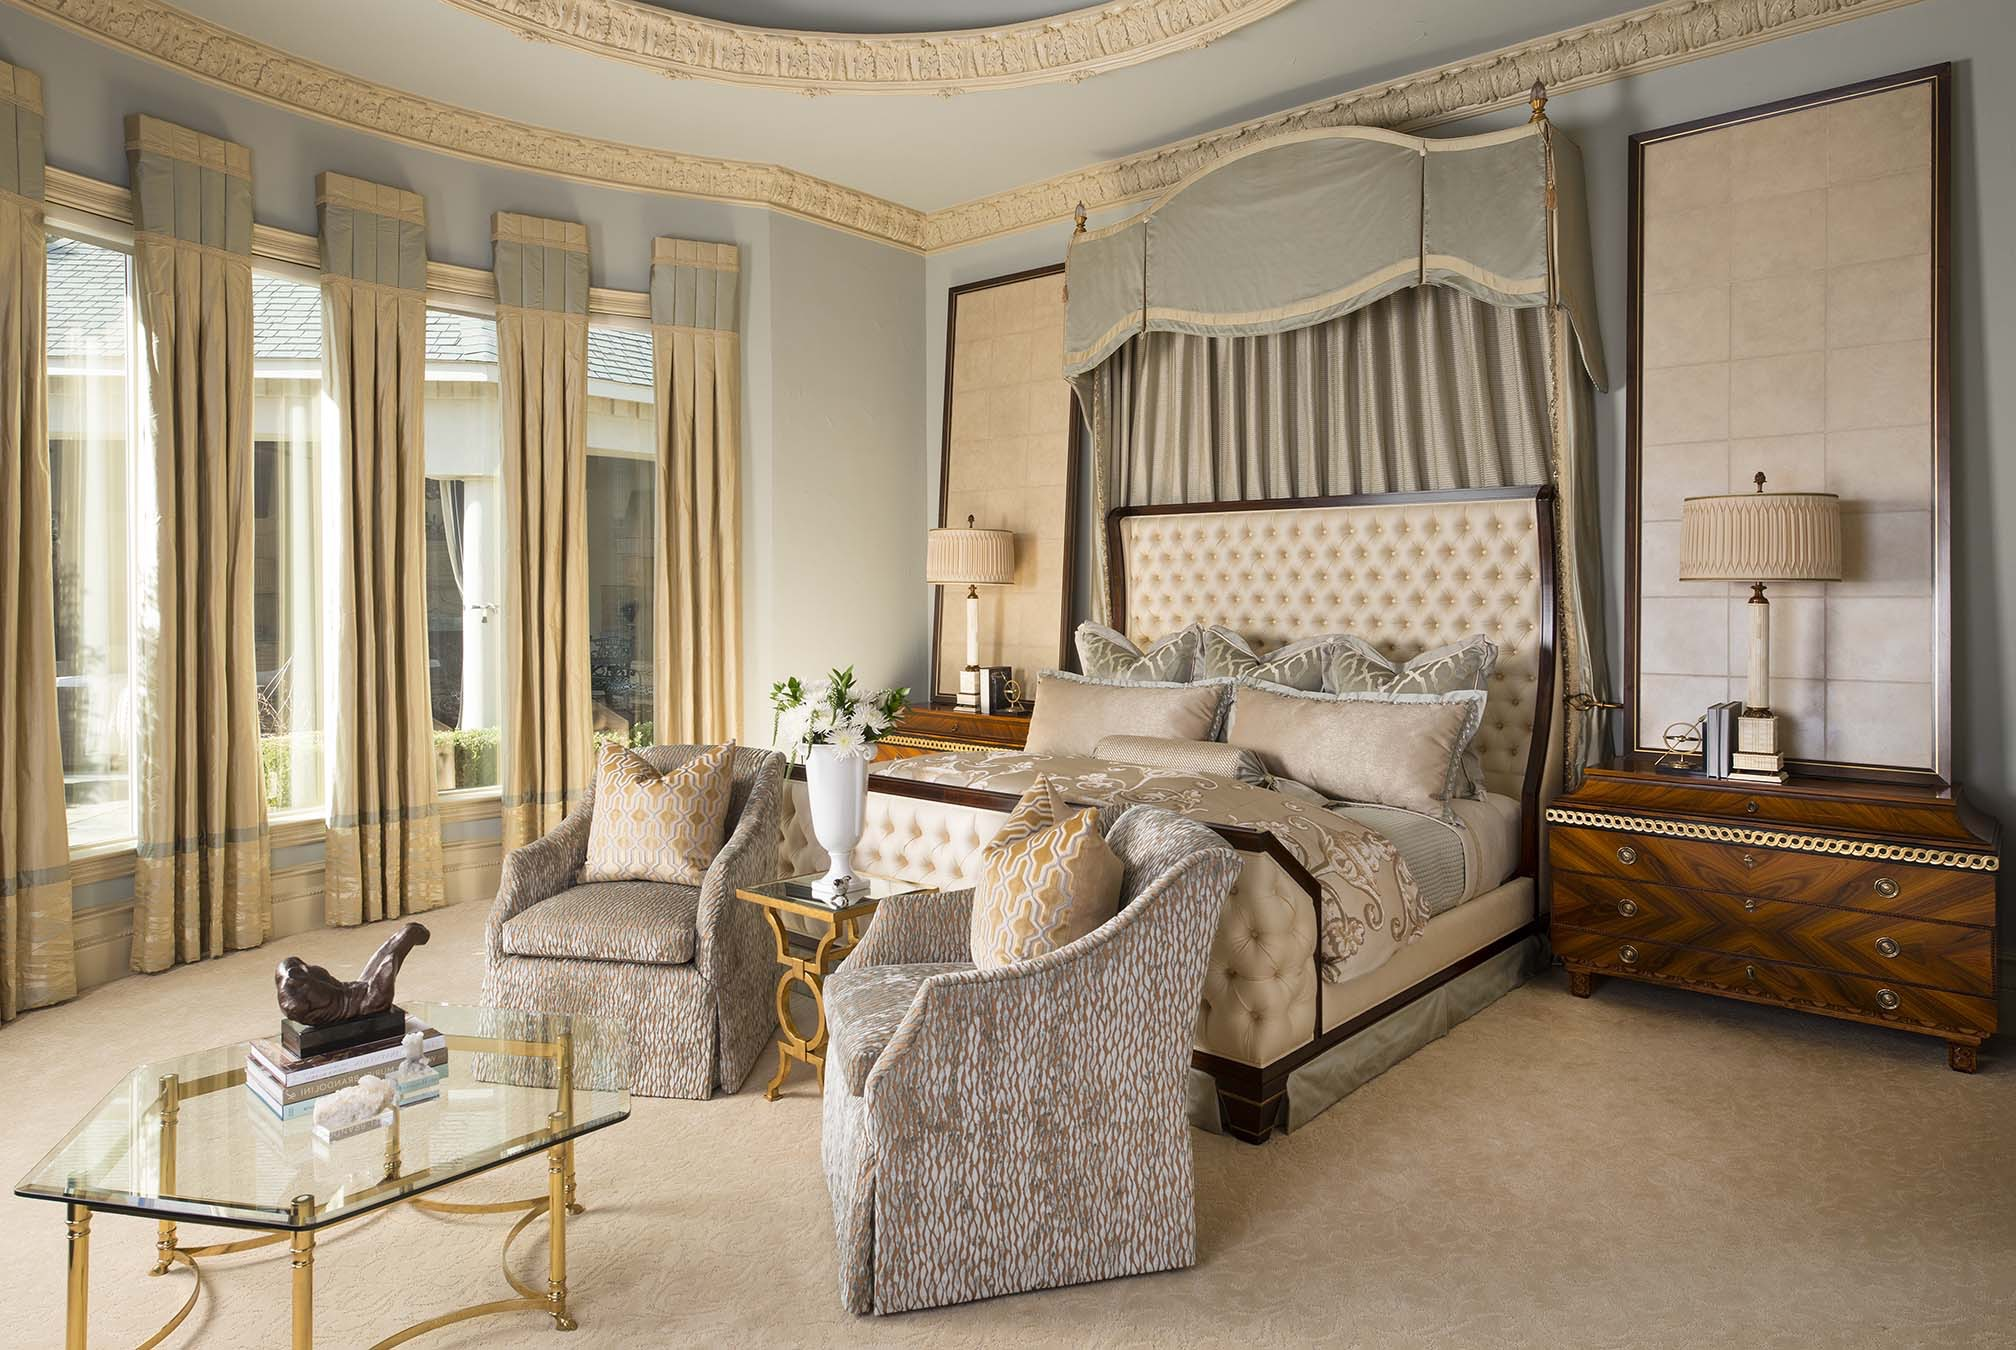 Luxury Victorian Master Bedroom With Seating Area (Image 4 of 19)